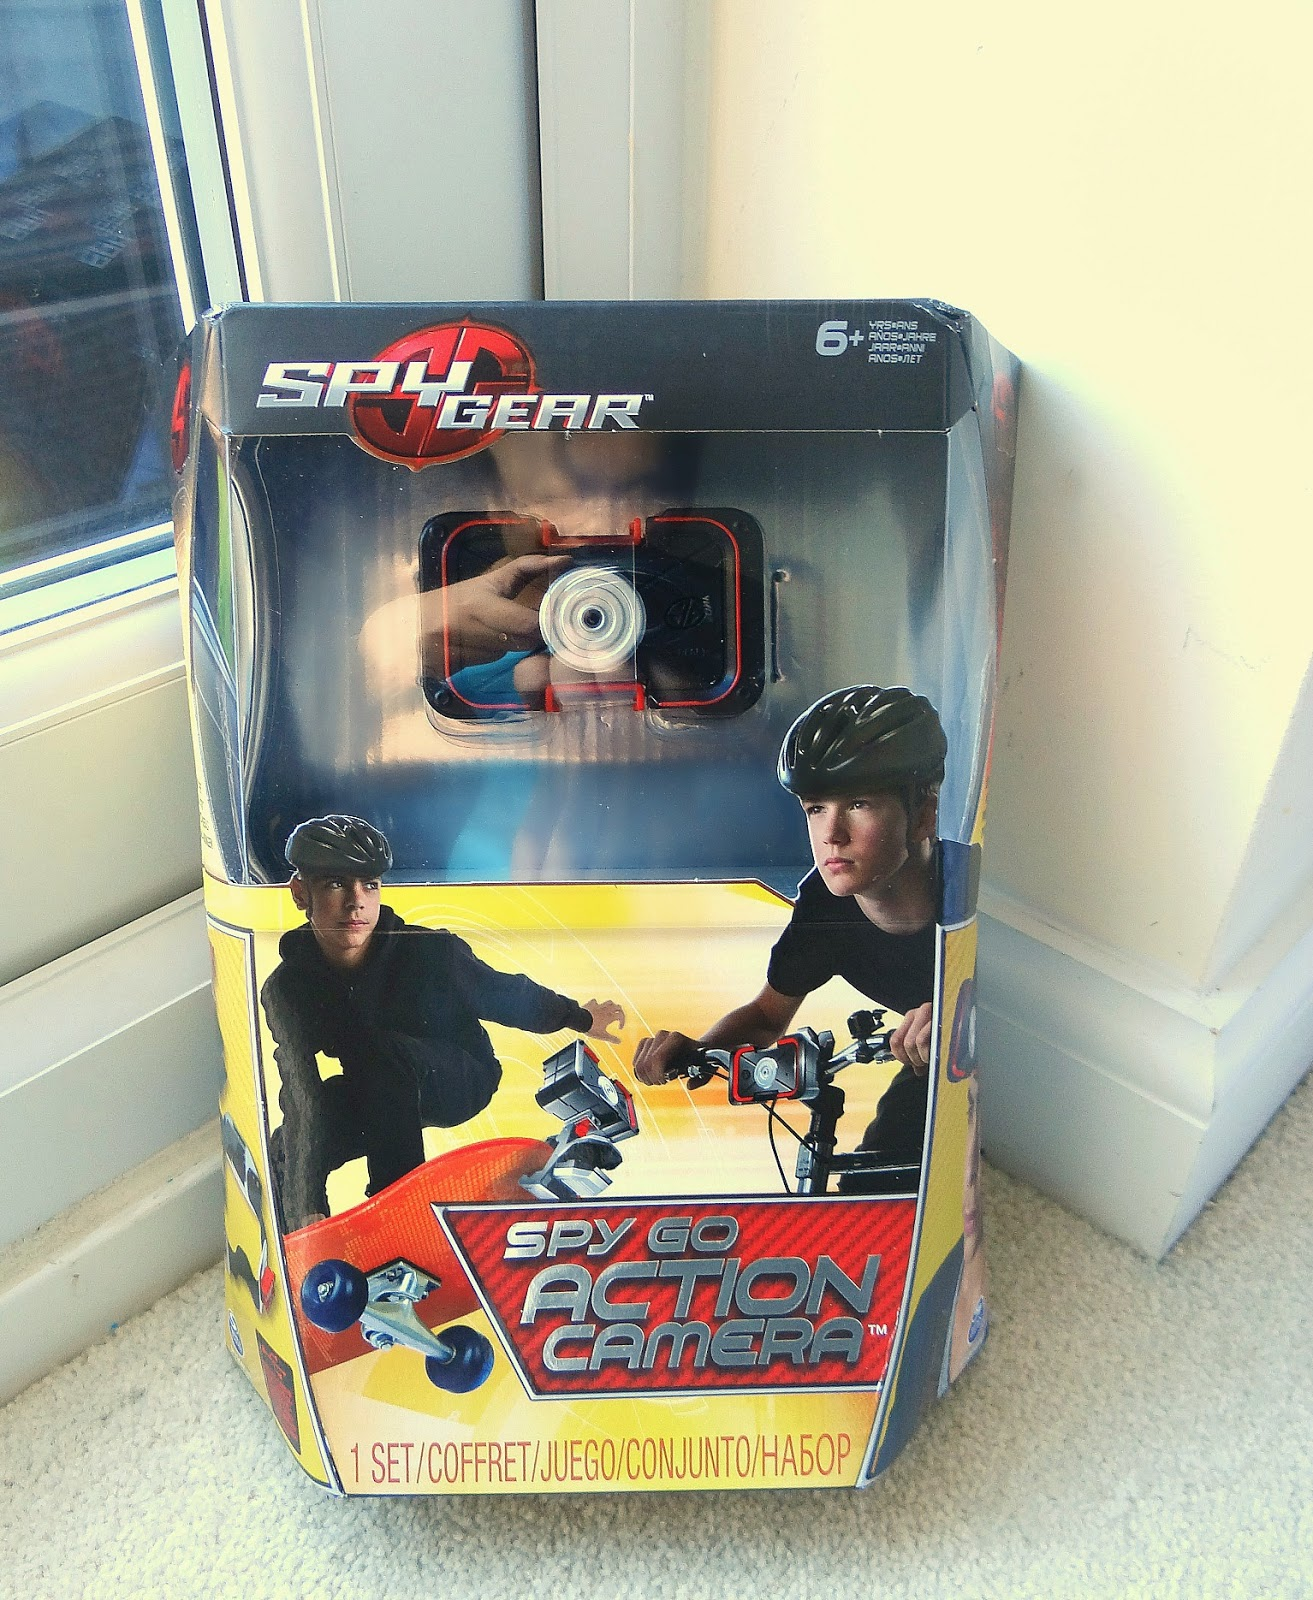 Spy Gear Spy Go Action Camera | This Is Life